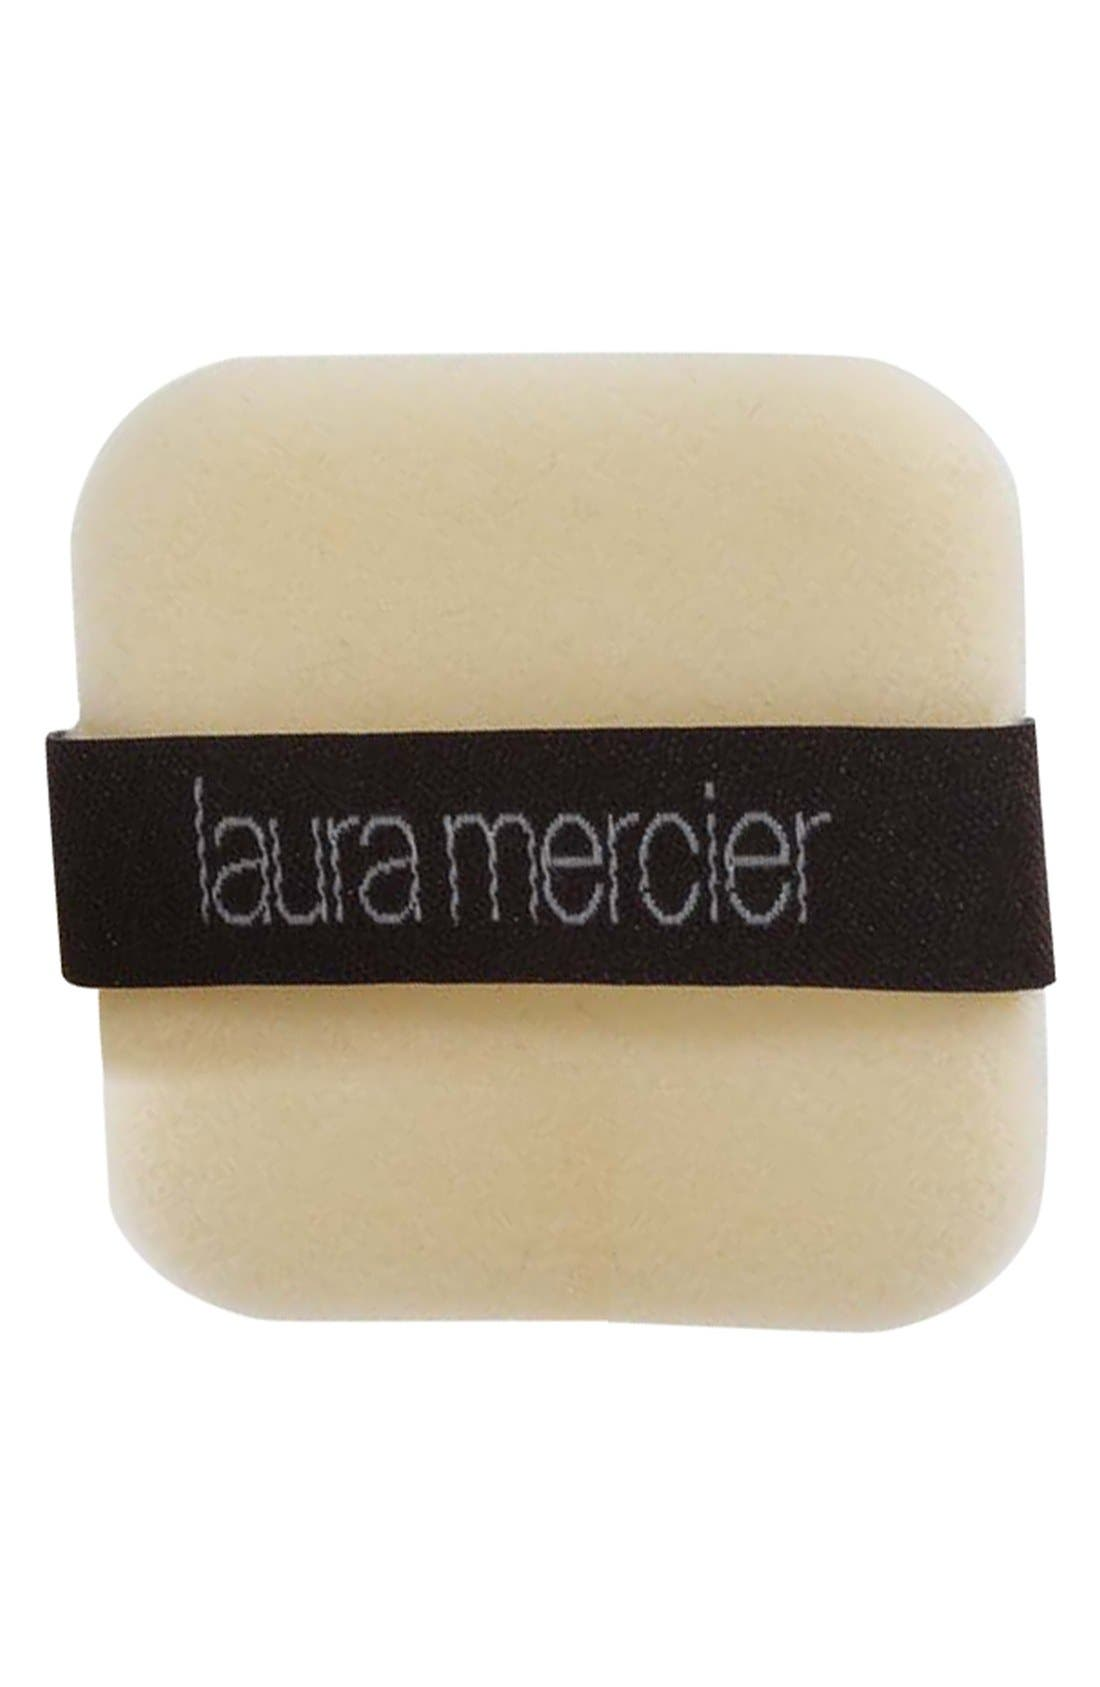 Laura Mercier 'Invisible' Pressed Powder Puff